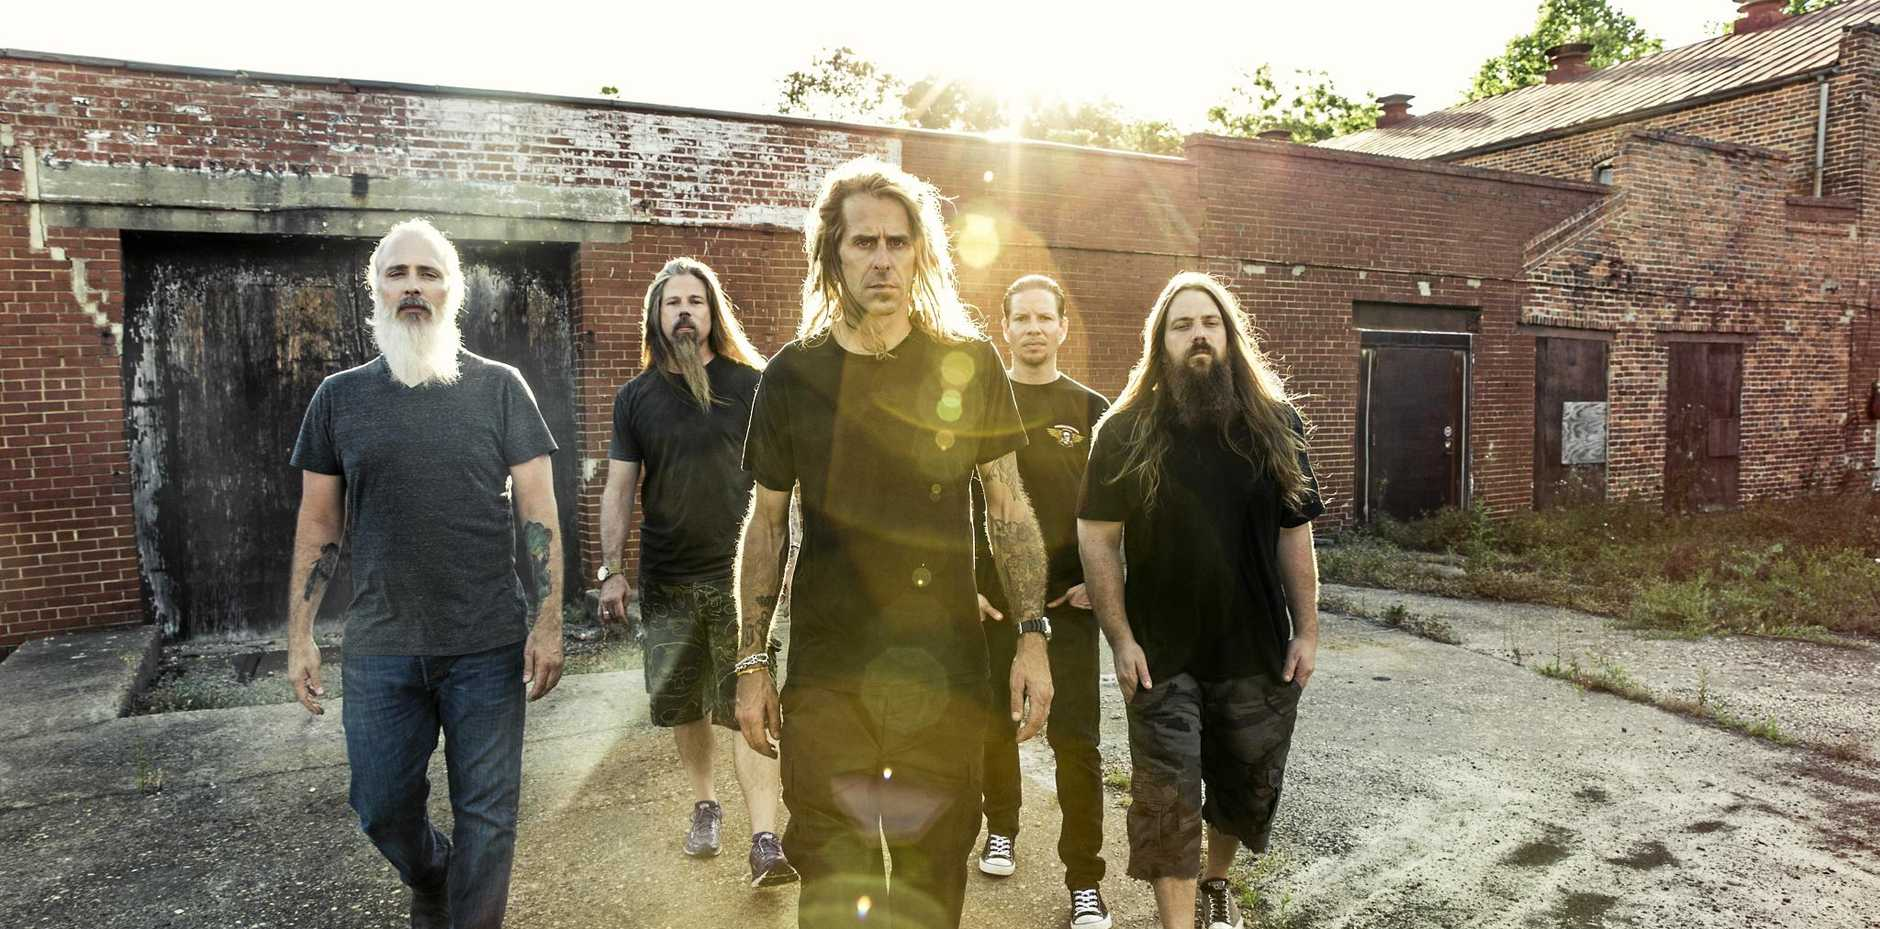 Lamb of God will tour Australia with Slipknot in October. Photo Contributed